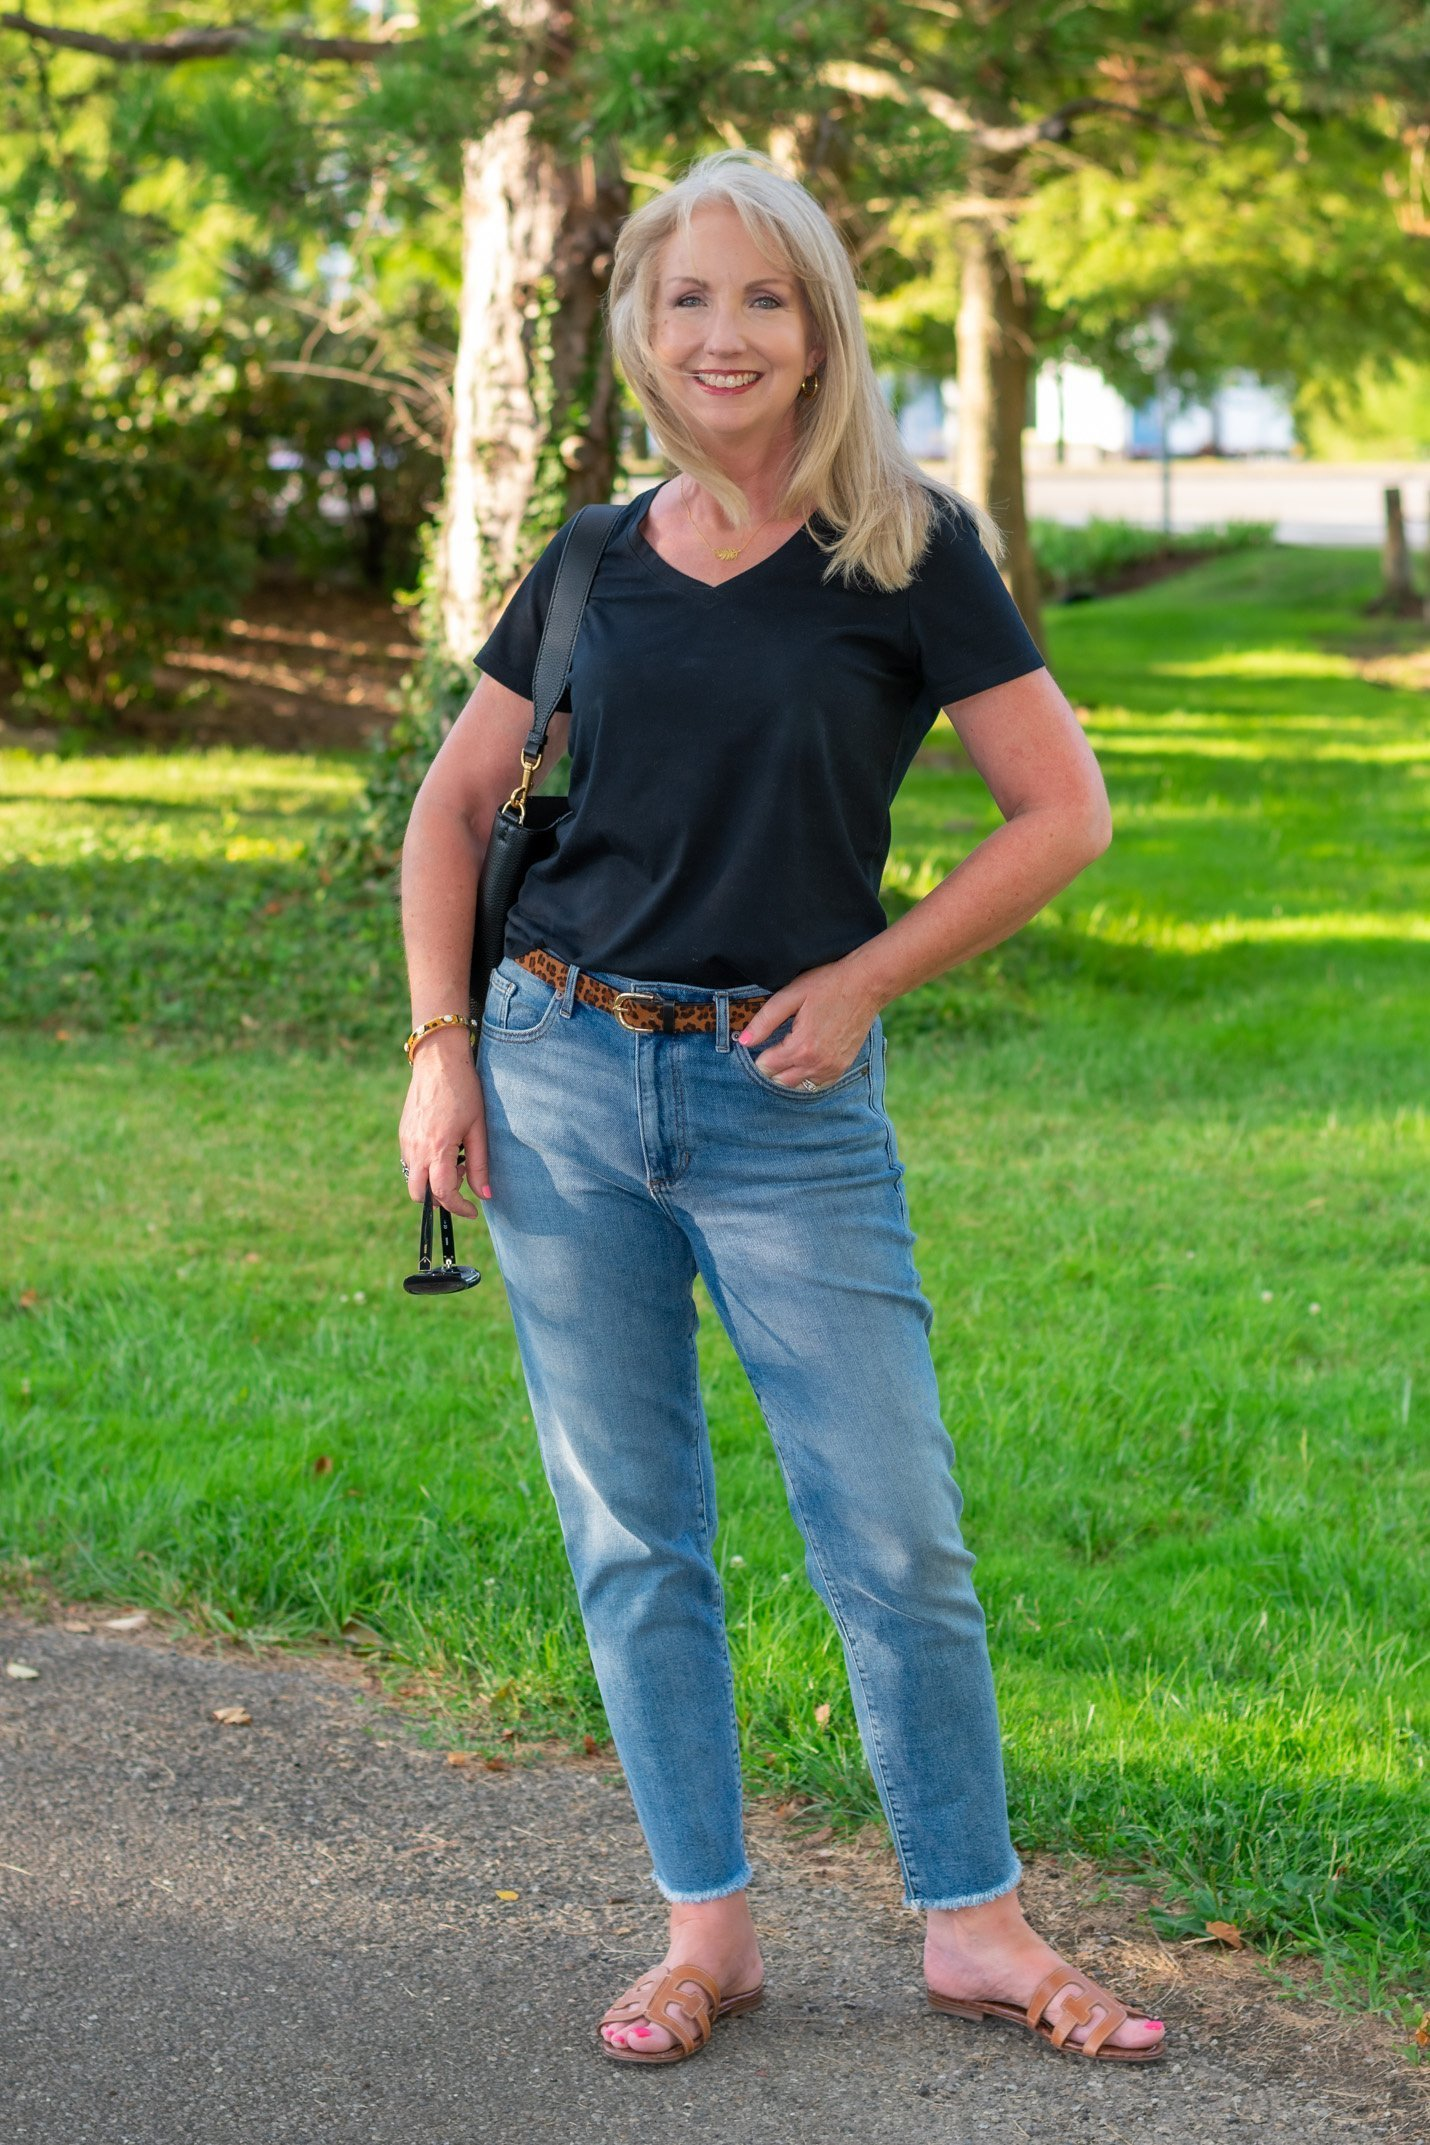 Transition Into Fall with a Black Tee and Jeans